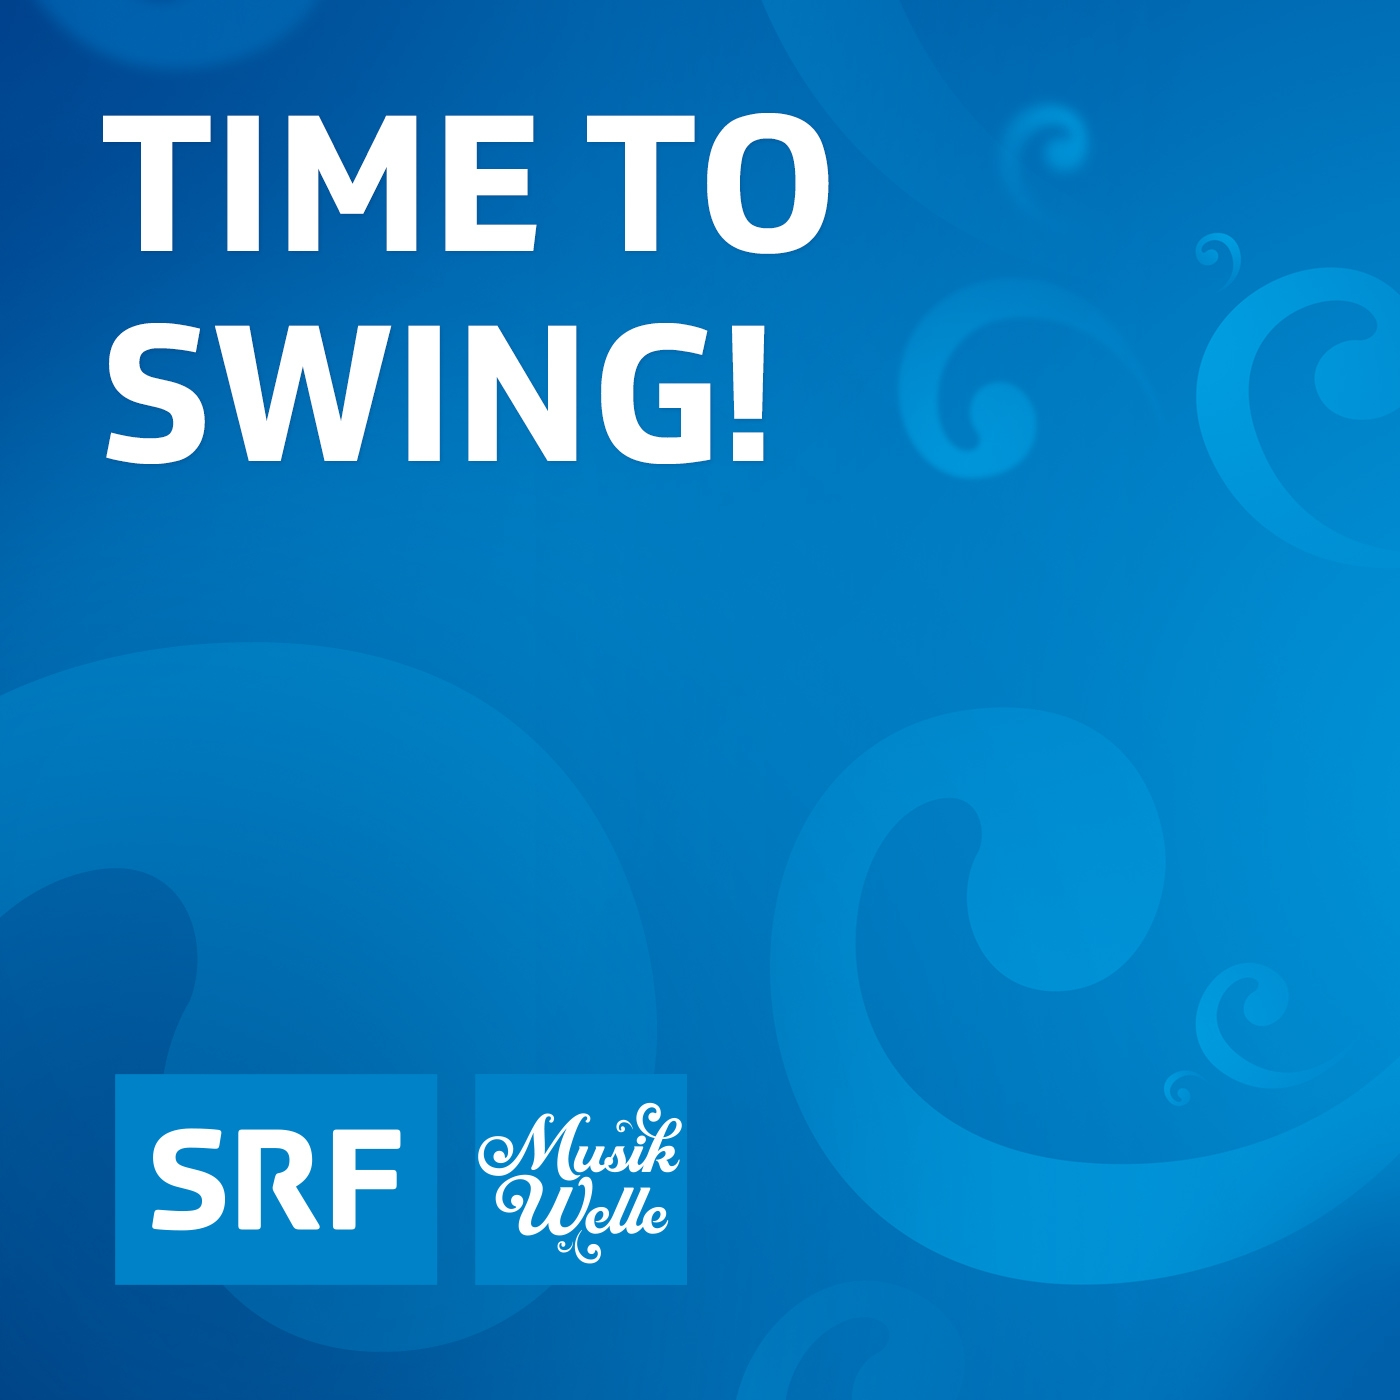 Time to swing!